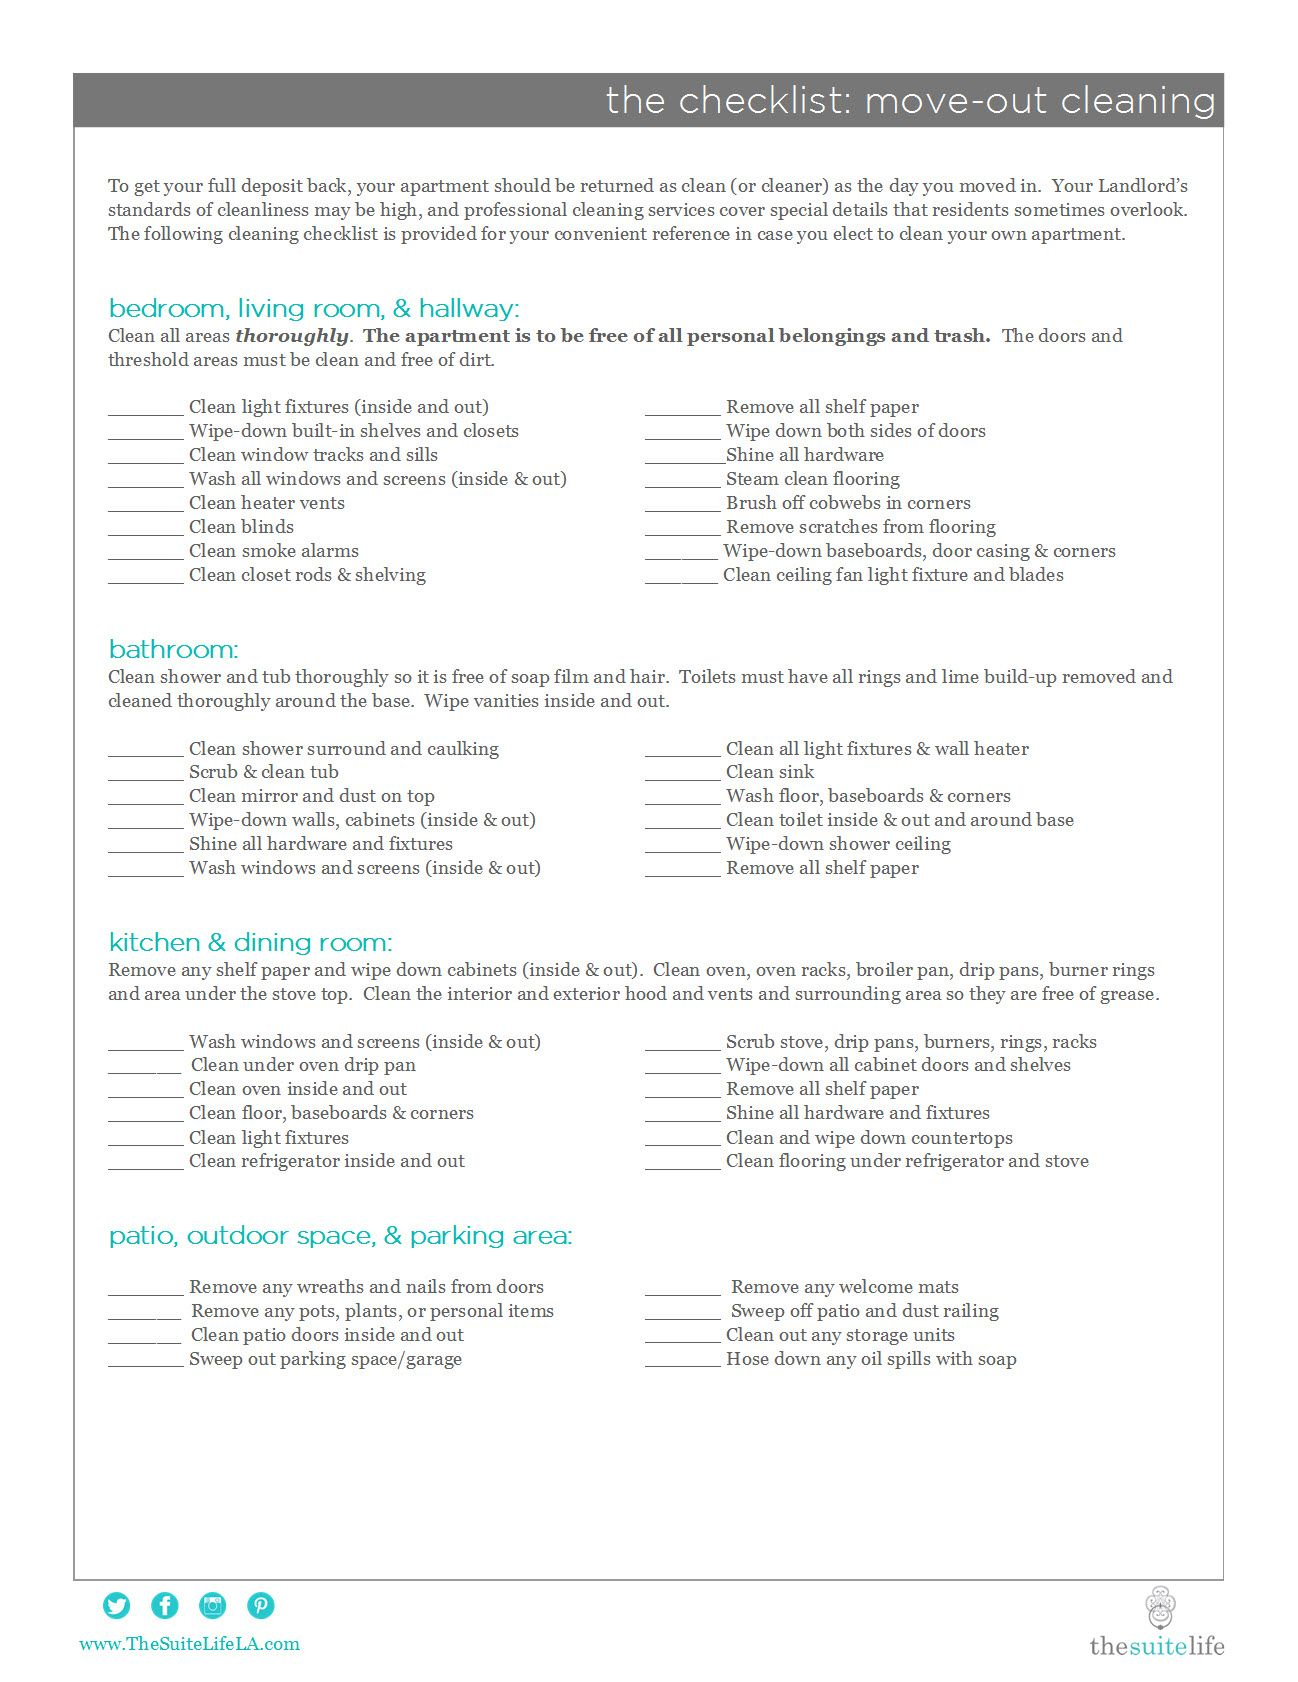 checklist moveout cleaning